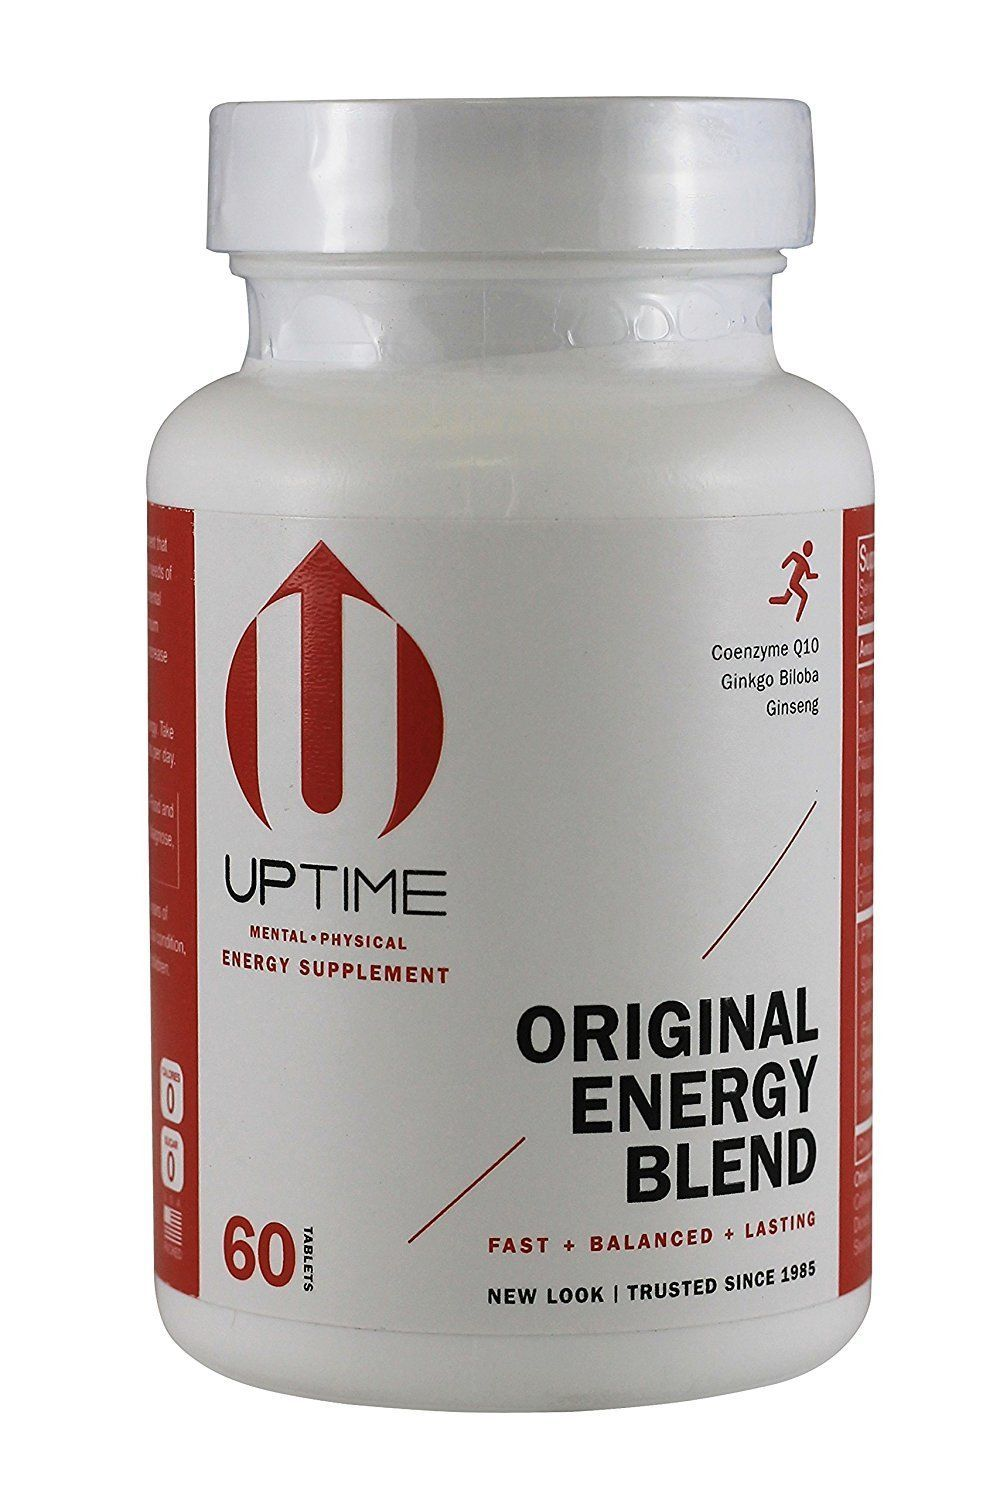 Up Time Energy Blend Supplement 60 Capsules Supplements Energy Supplements Nutritional Supplements